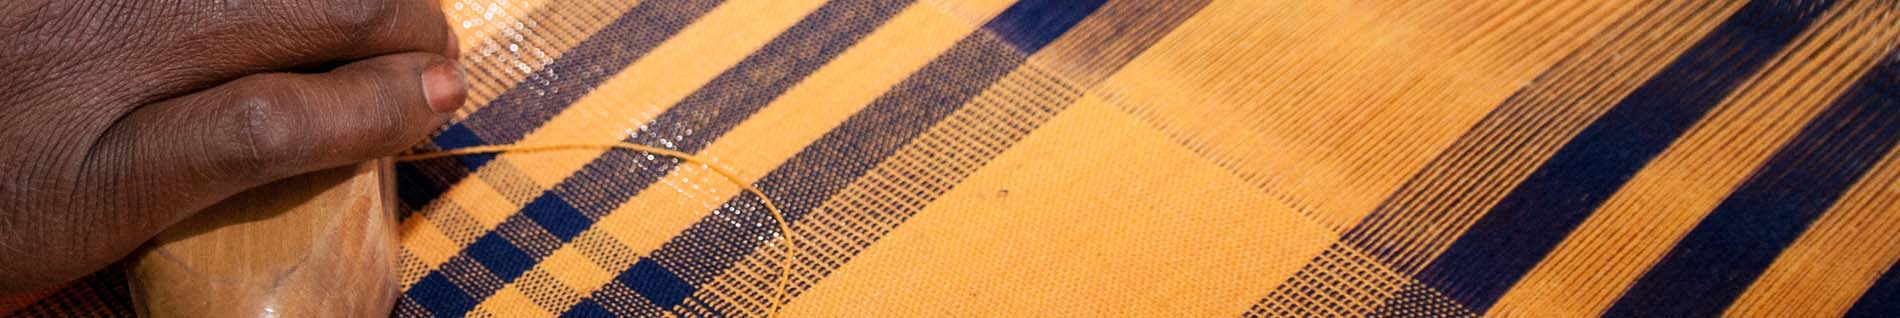 Hand-weaving tartan fabric in Burkina Faso © Anne Mimault & ITC Ethical Fashion Initiative